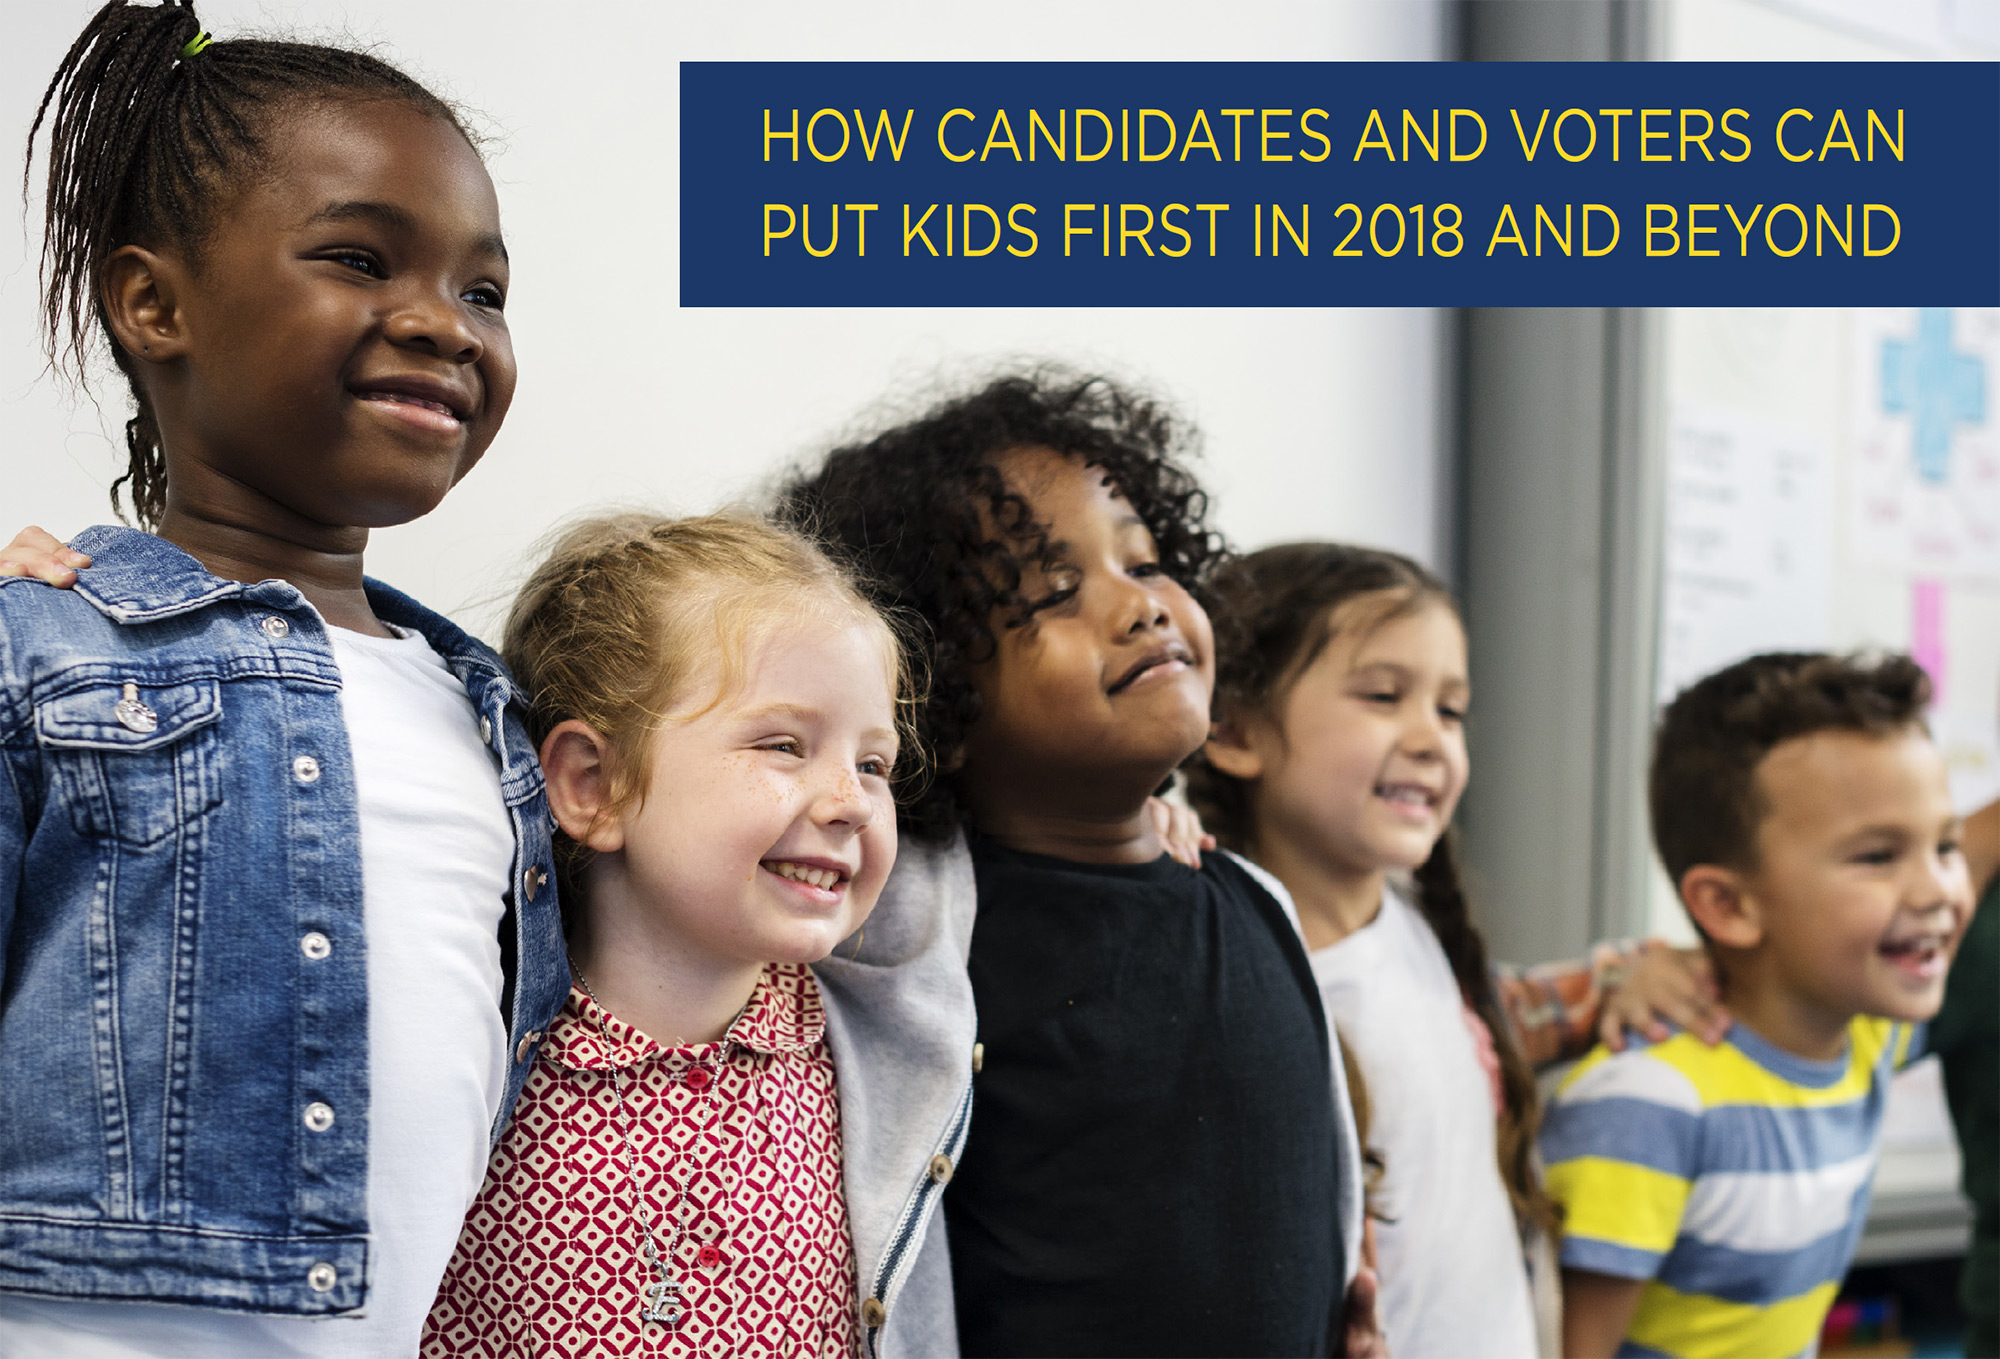 PUT KIDS FIRST IN 2018